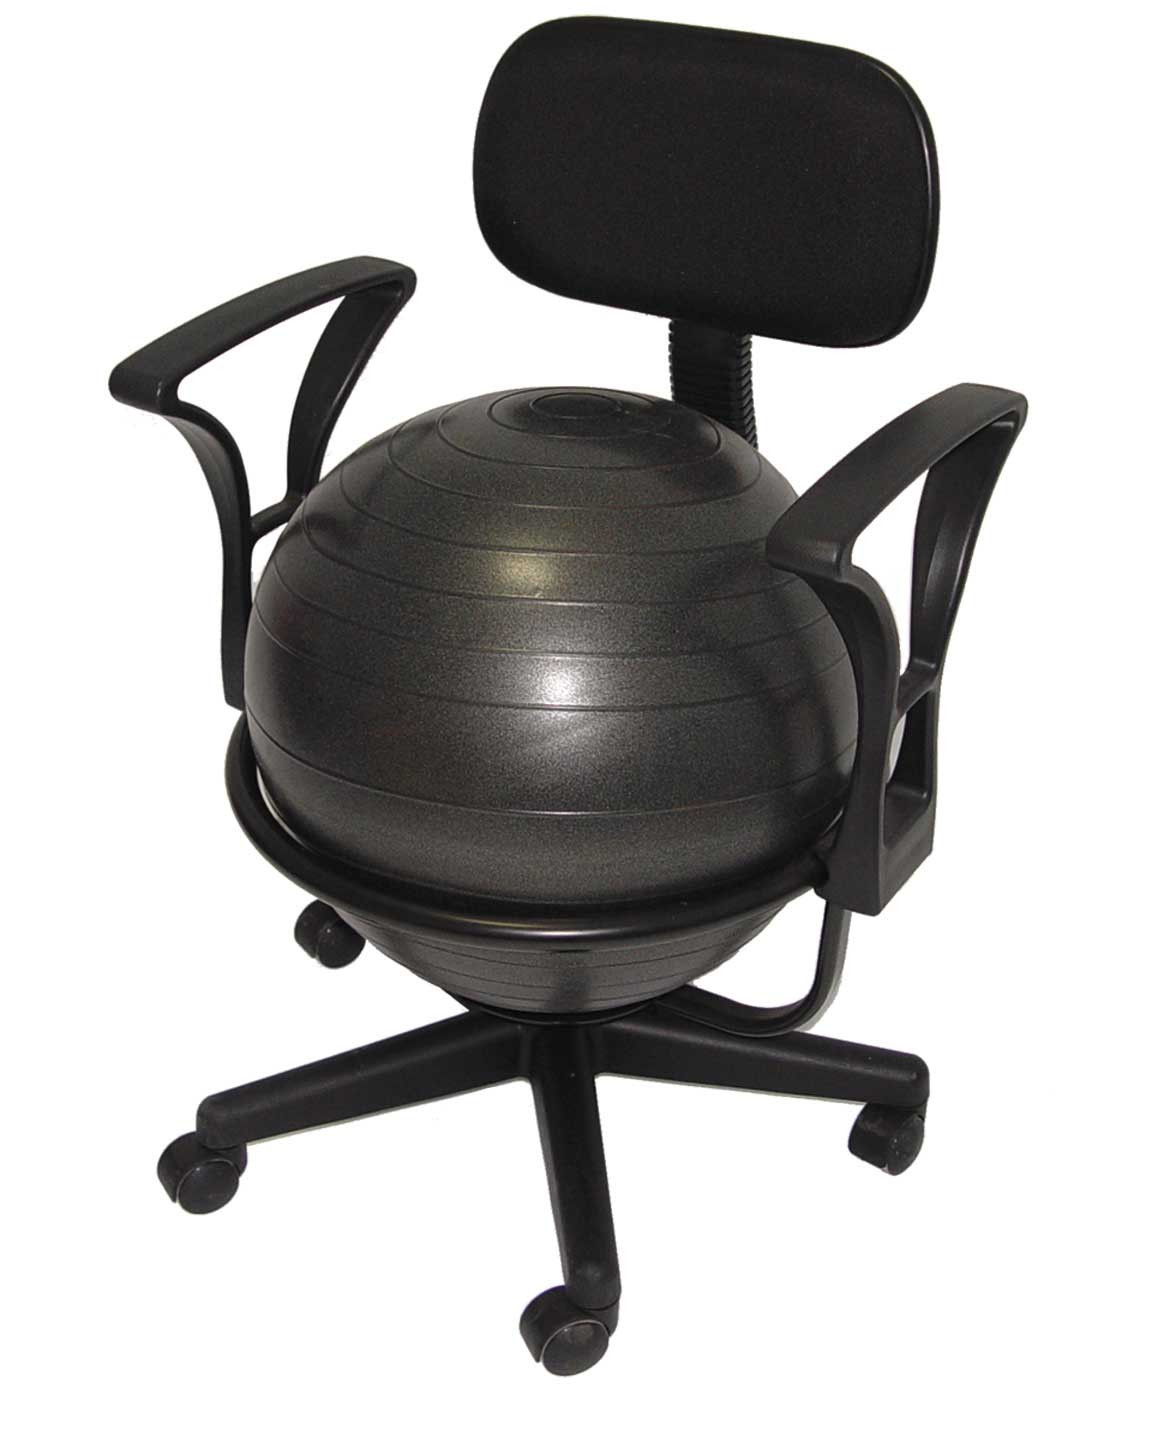 Best ideas about Exercise Ball Office Chair . Save or Pin exercise ball chair reviews Now.